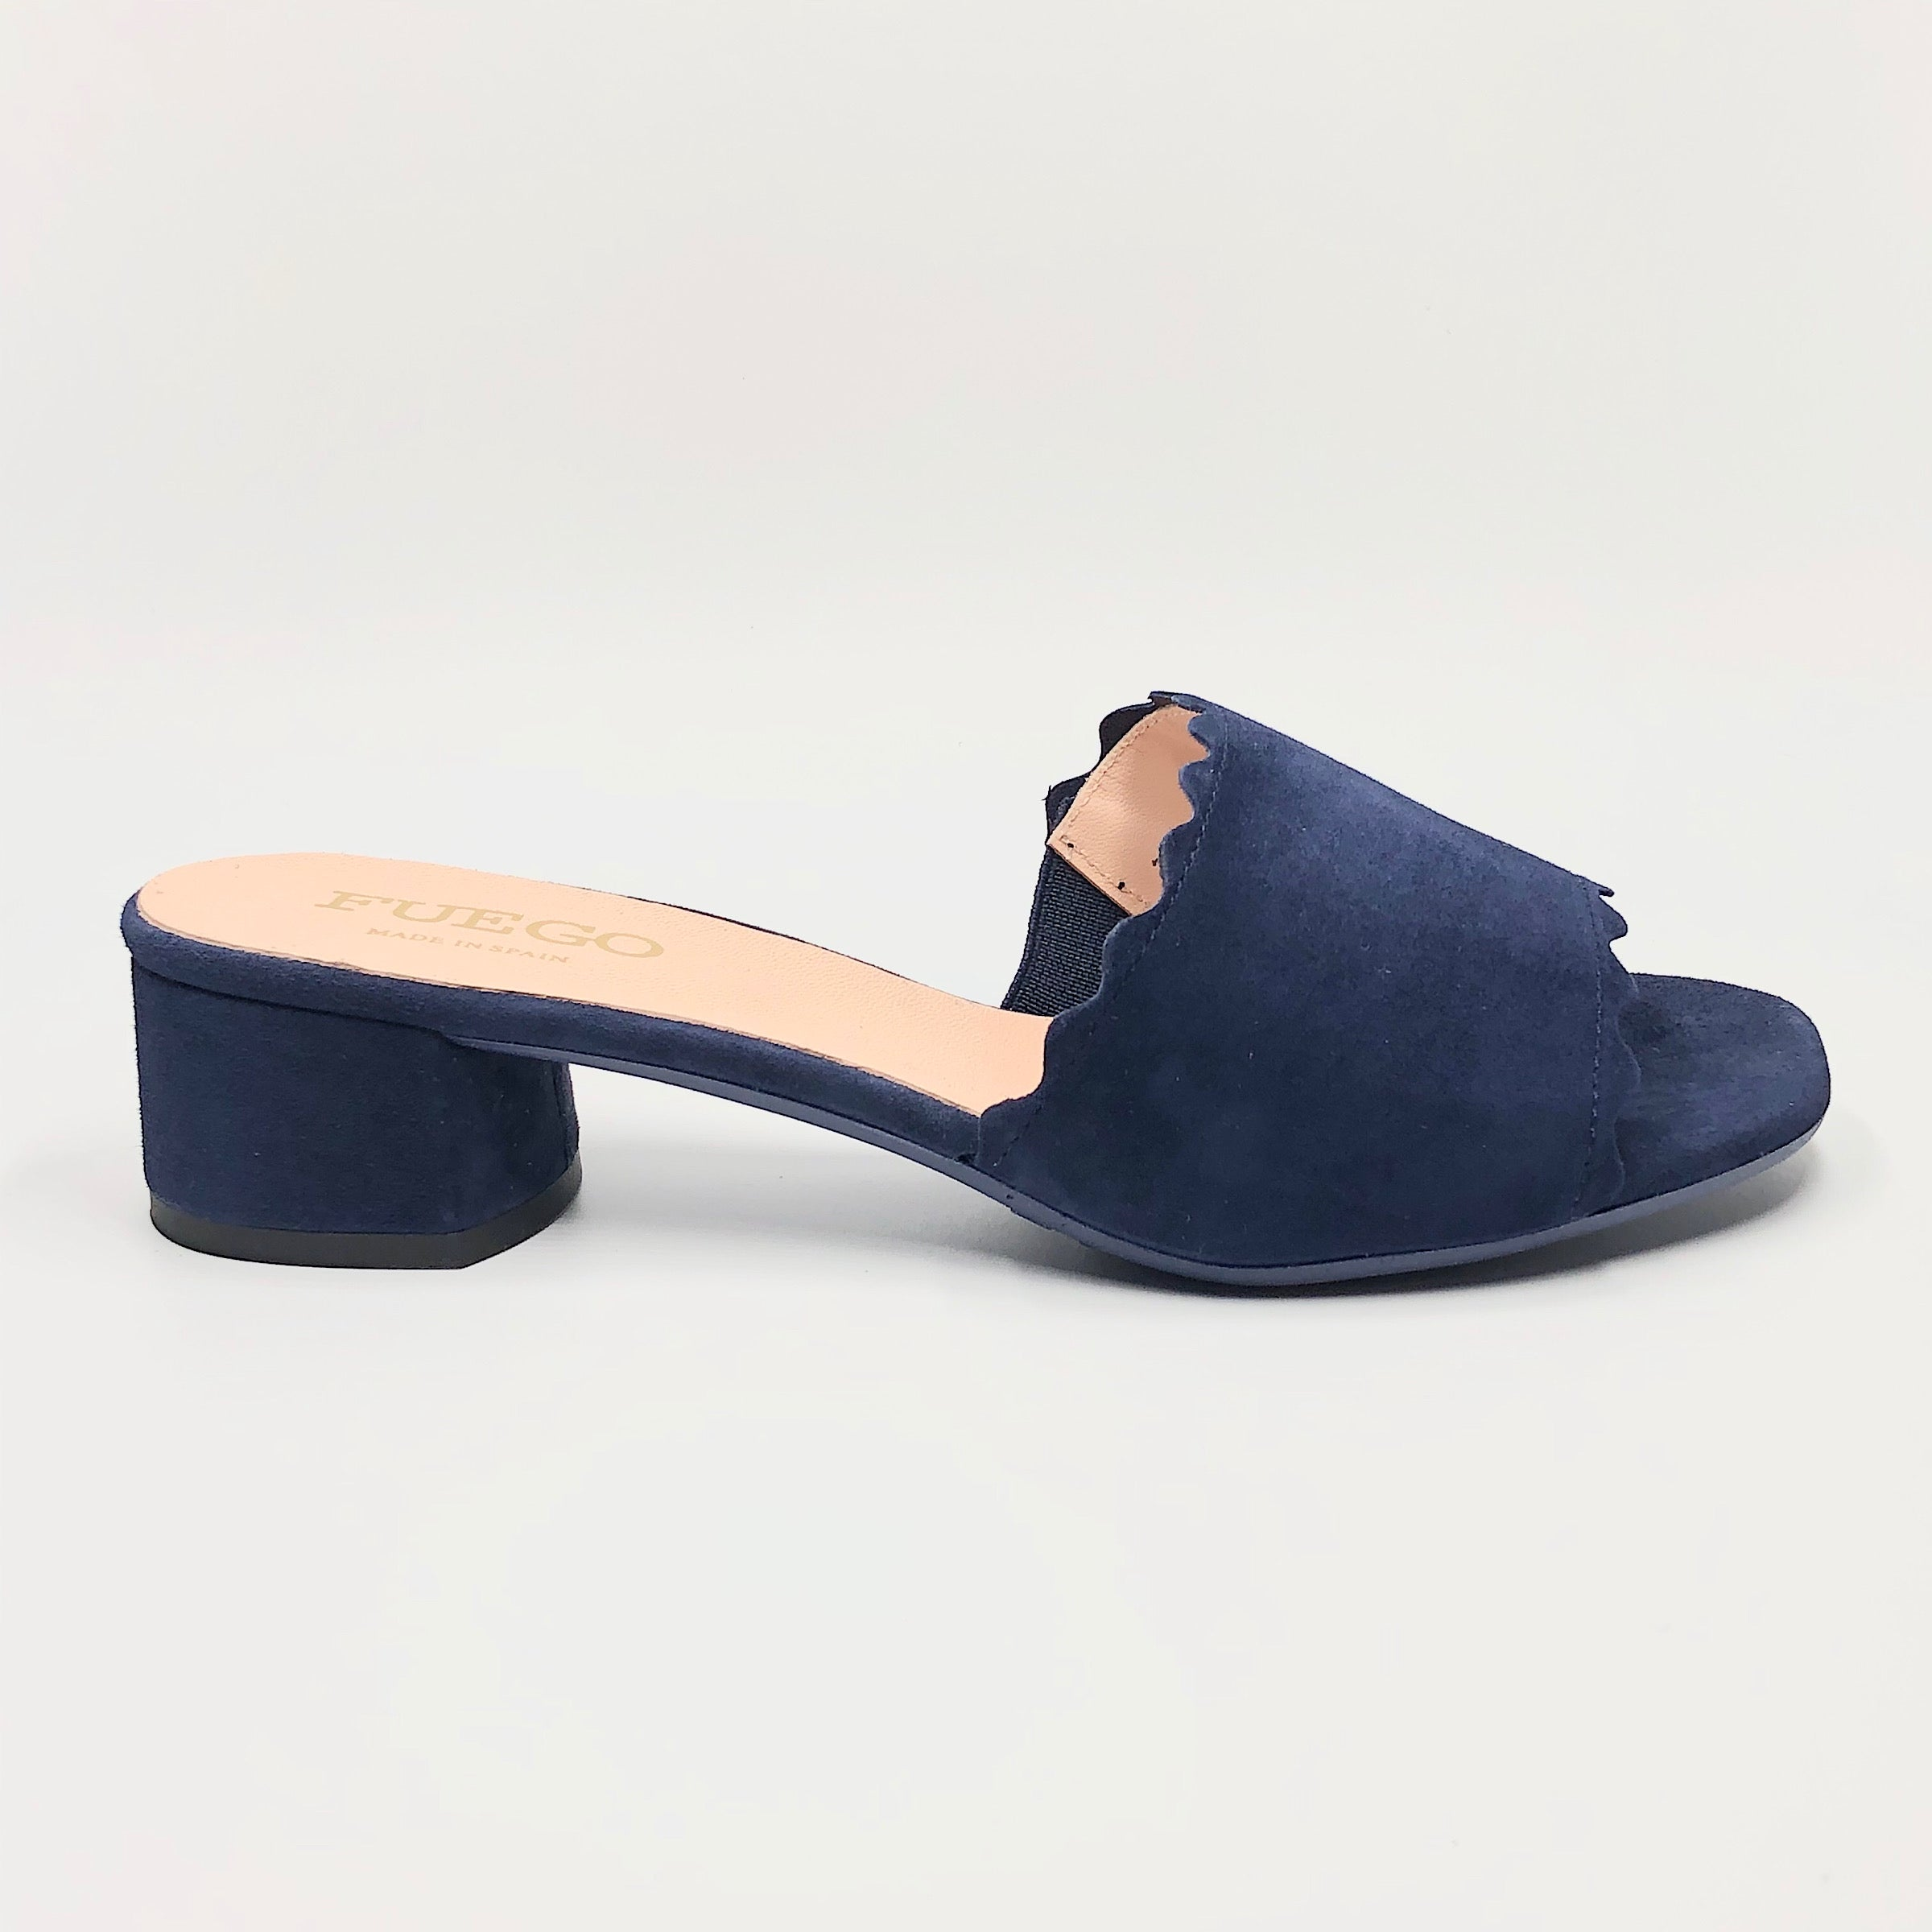 Ricrac - The Simple Slide in Navy